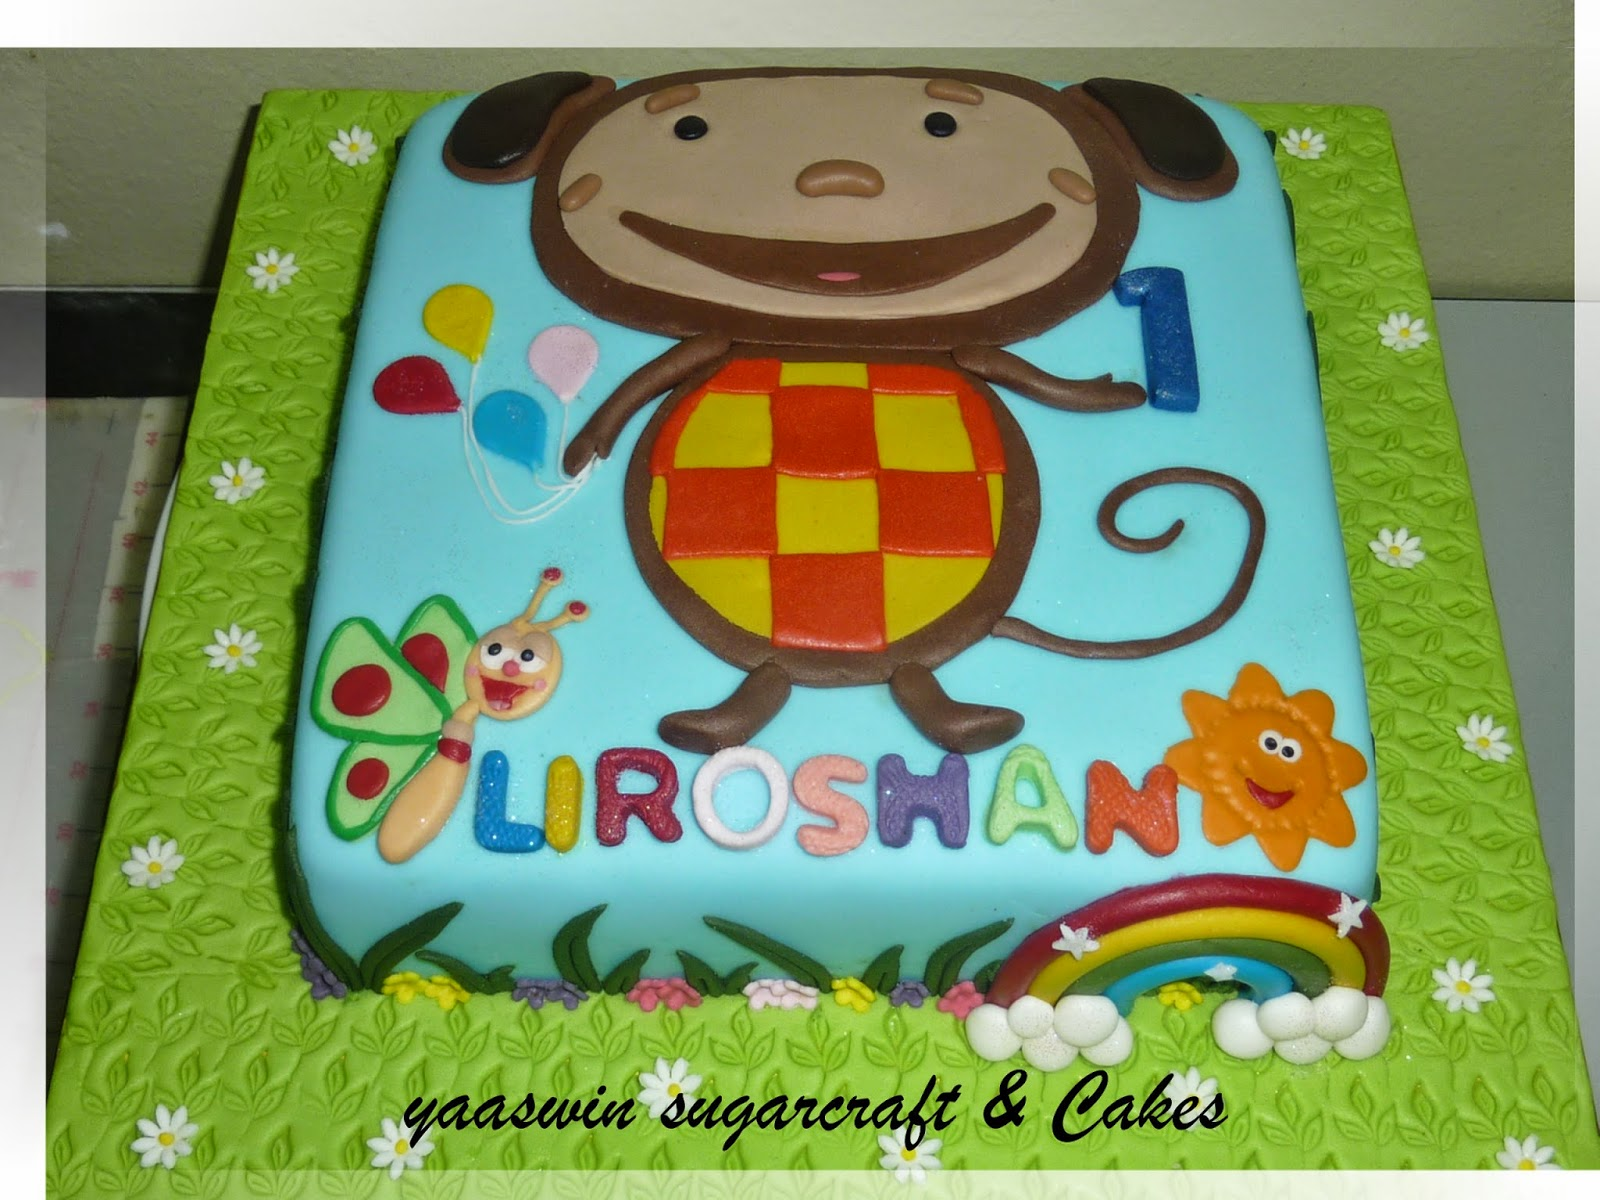 Cake Tv Show Crafts : Yaaswin Sugarcraft & Cakes: Oliver Baby Tv Themed ...